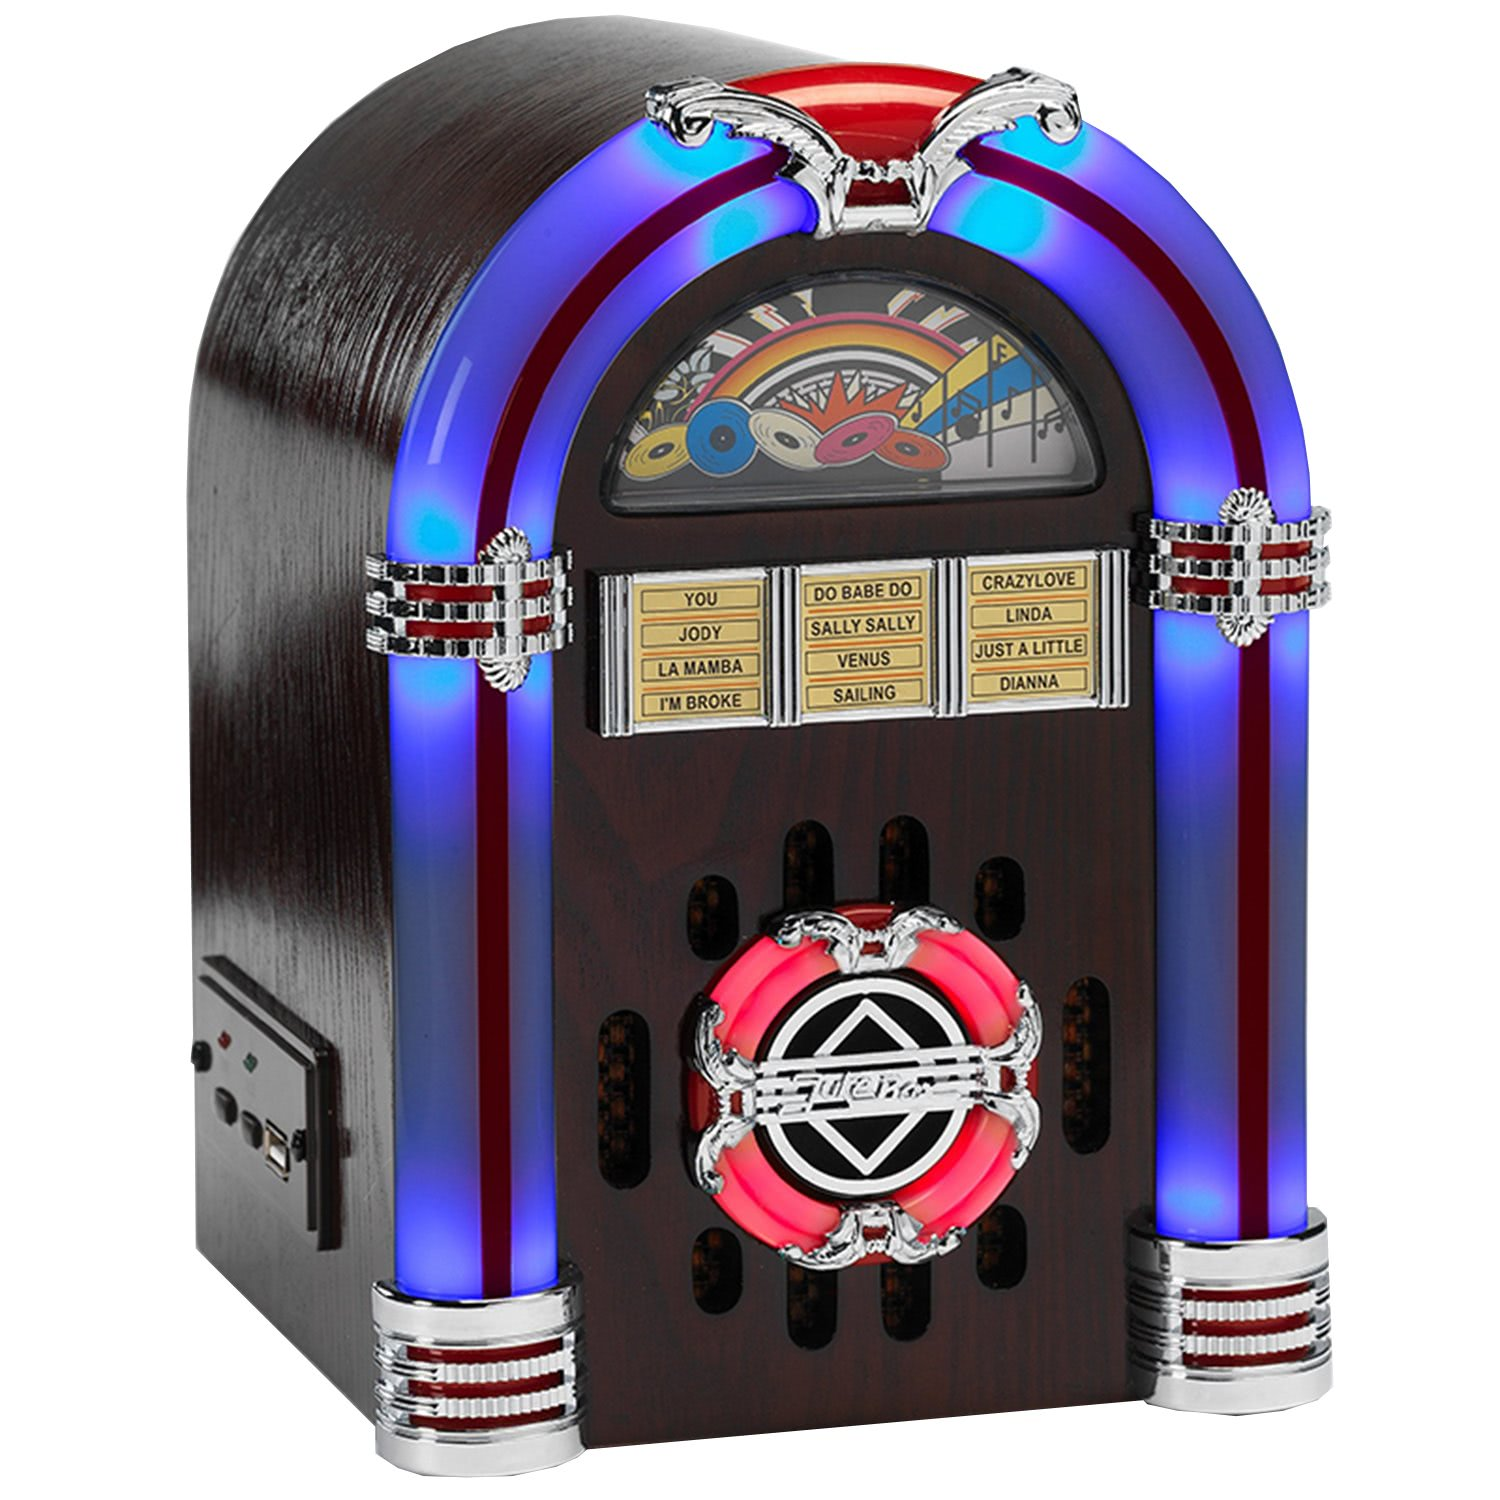 Steepletone Usb Sub Led Compact Mp3 Mini Jukebox Liberty